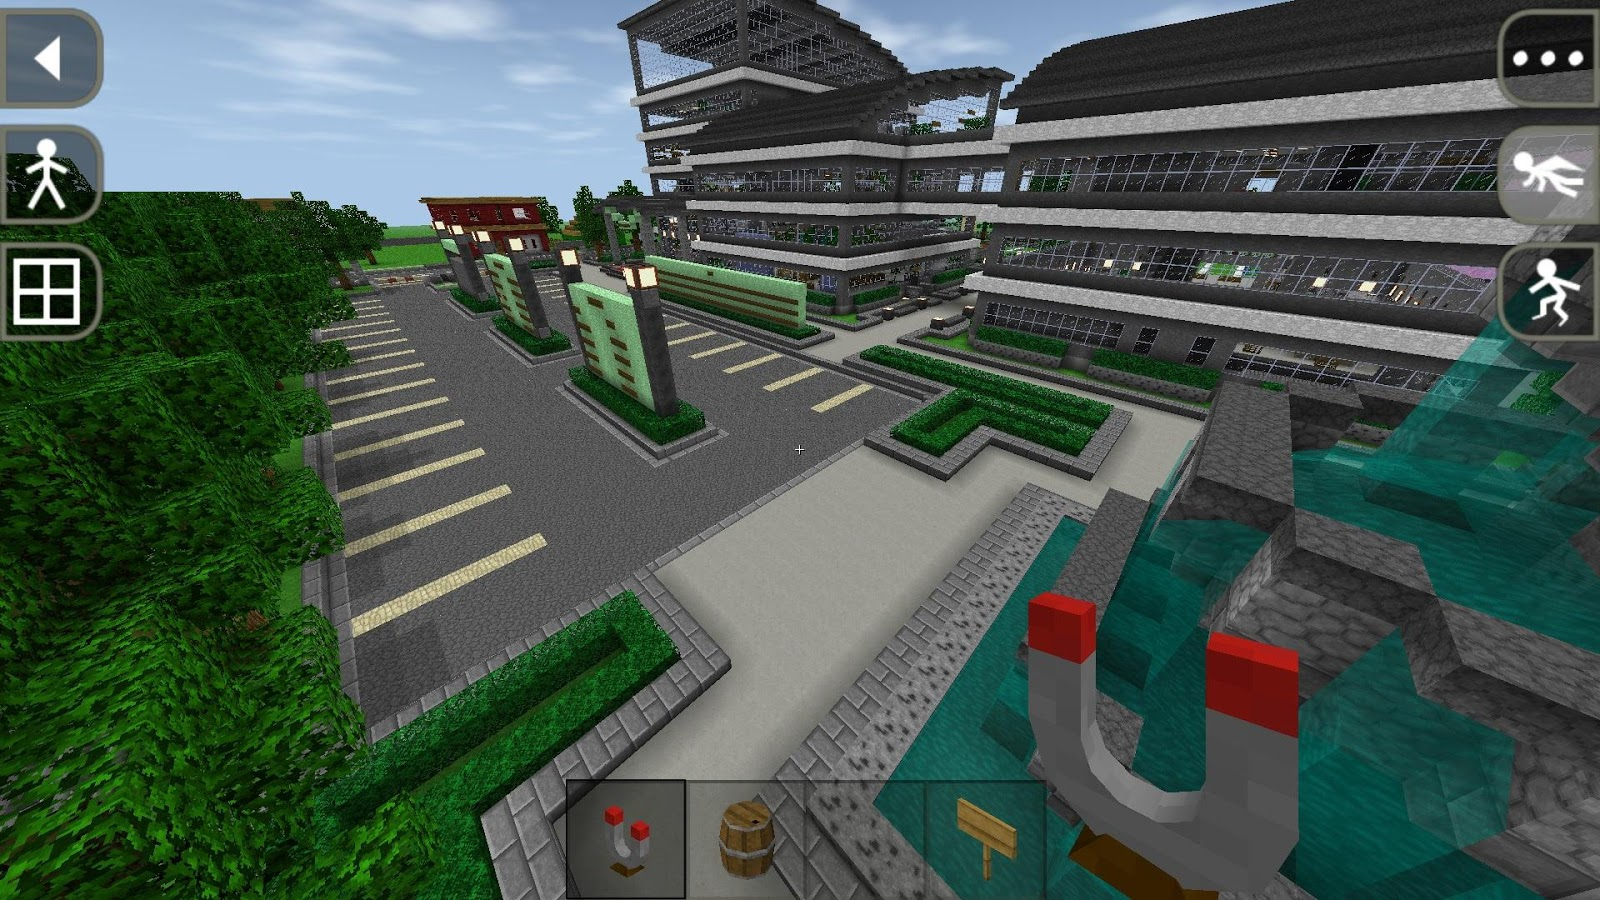 Survivalcraft Demo Android Apps on Google Play